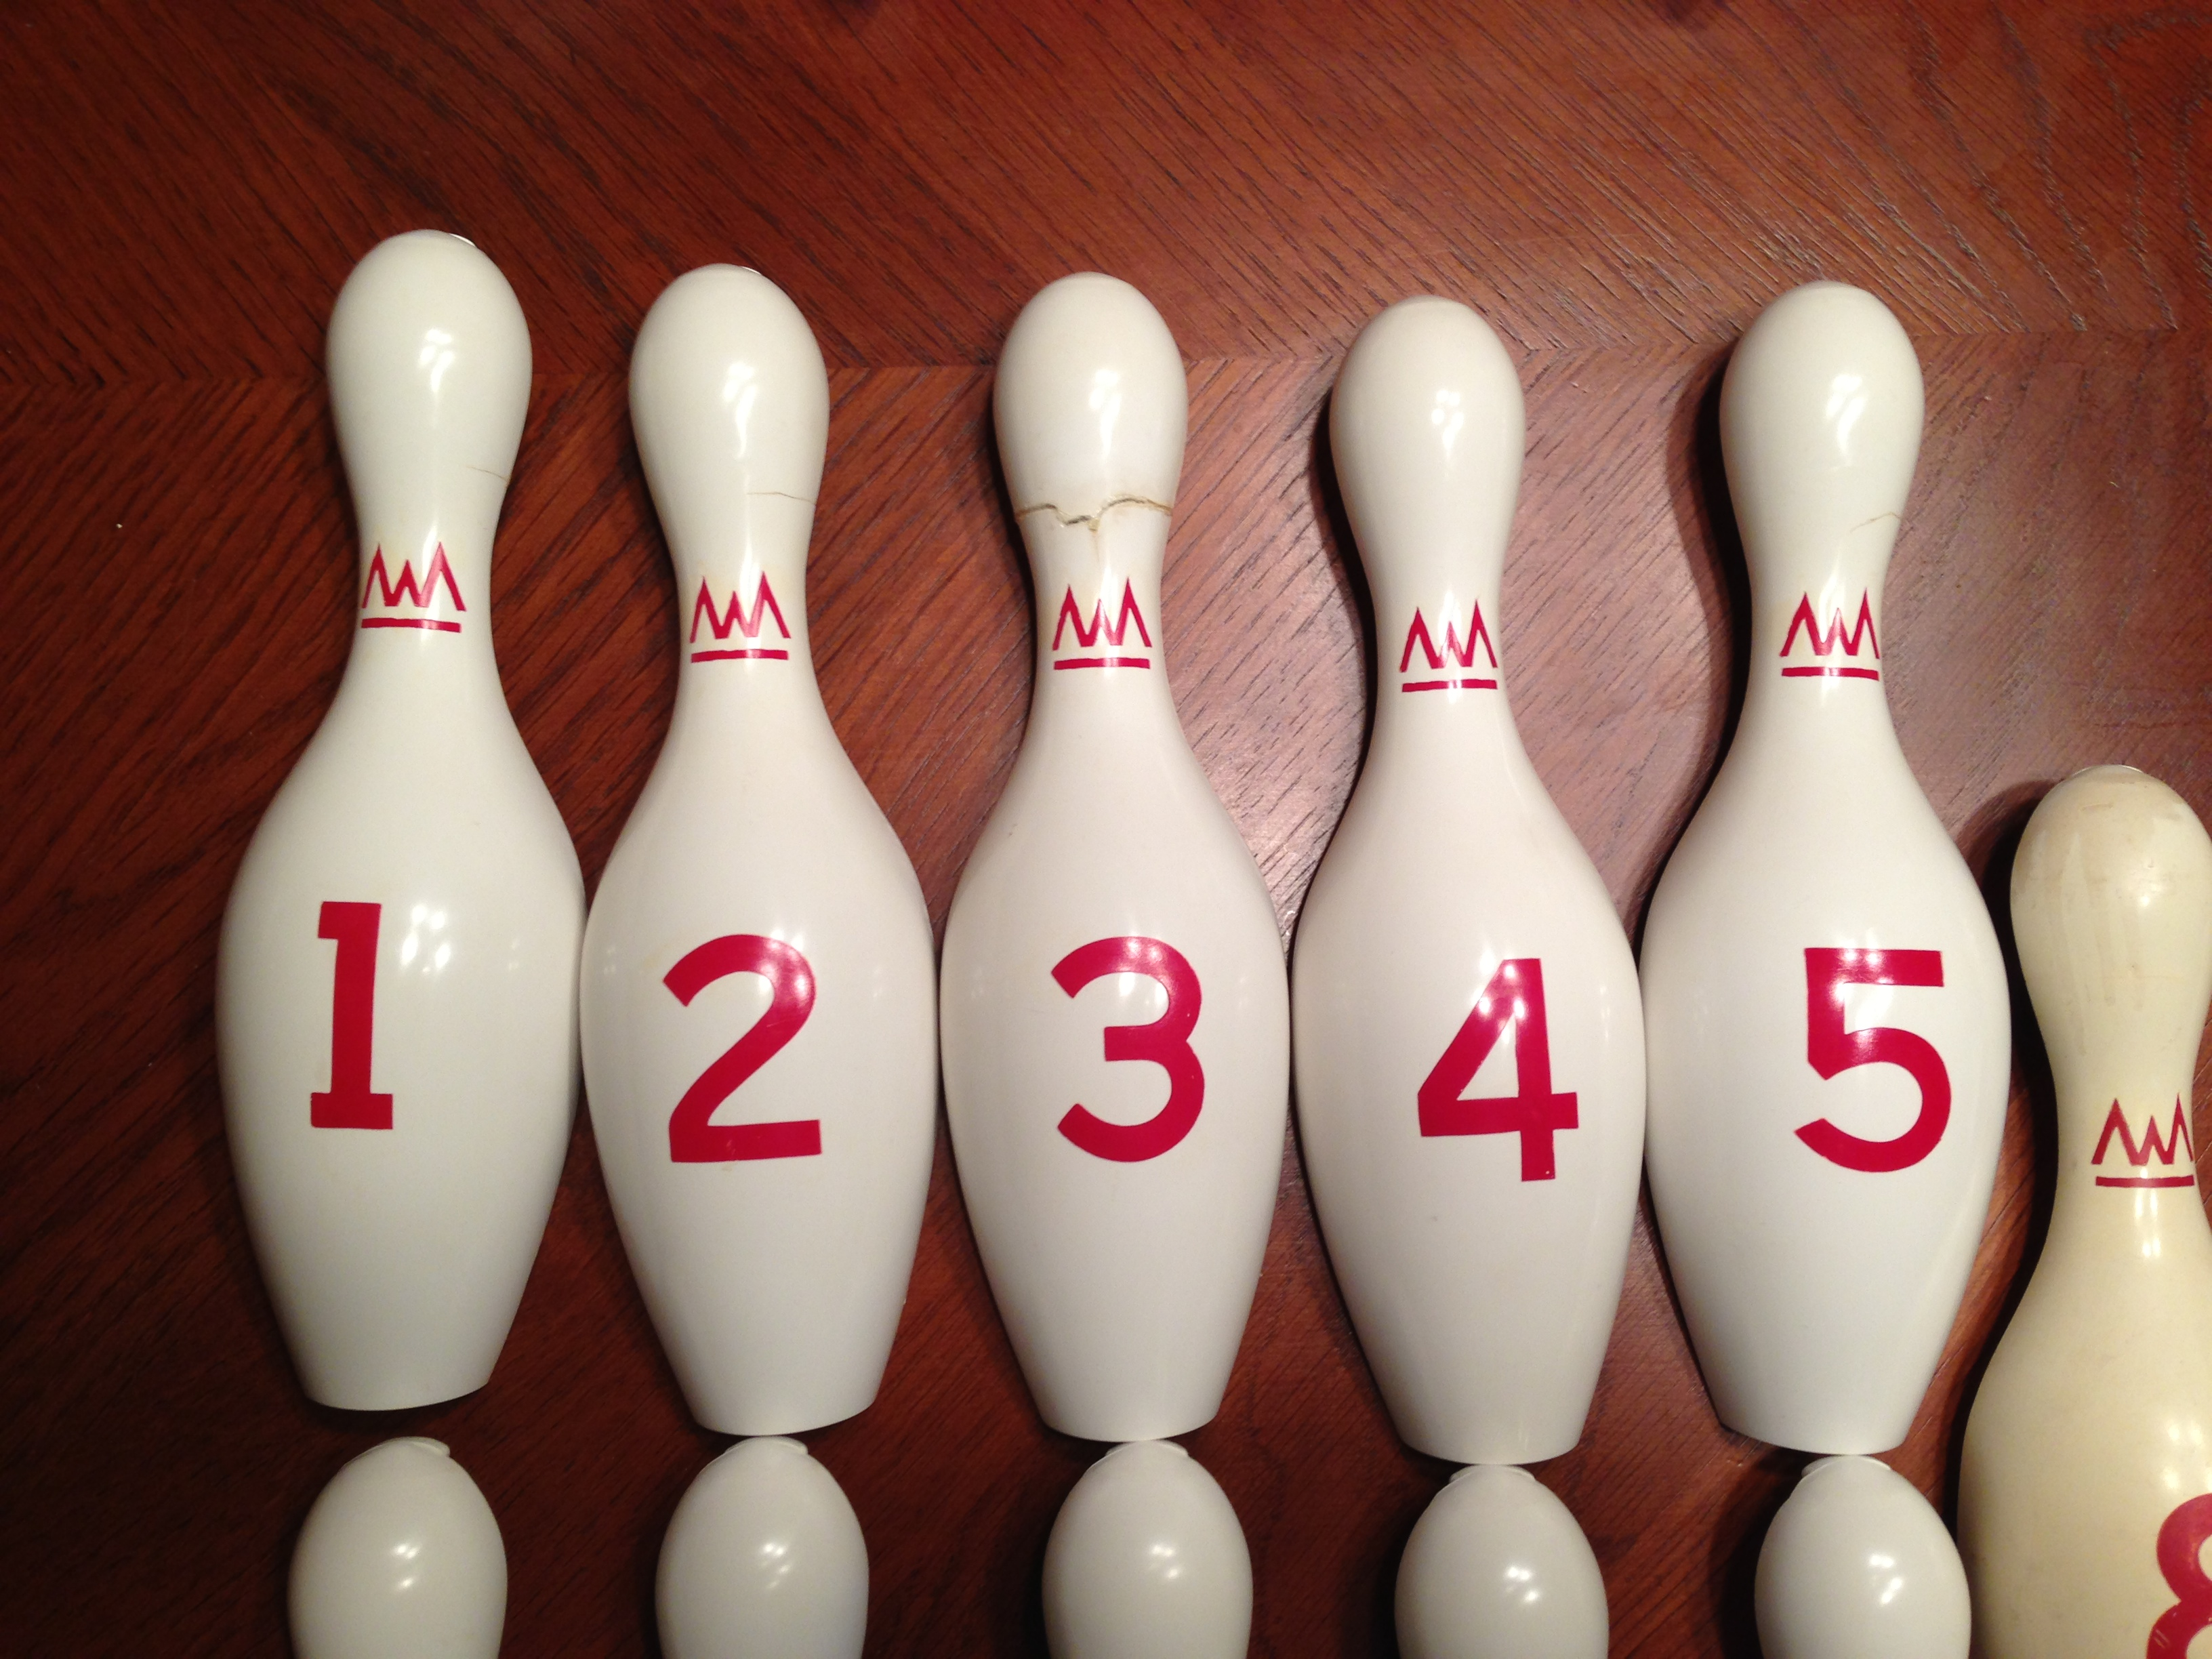 bowling pin cleaning machine